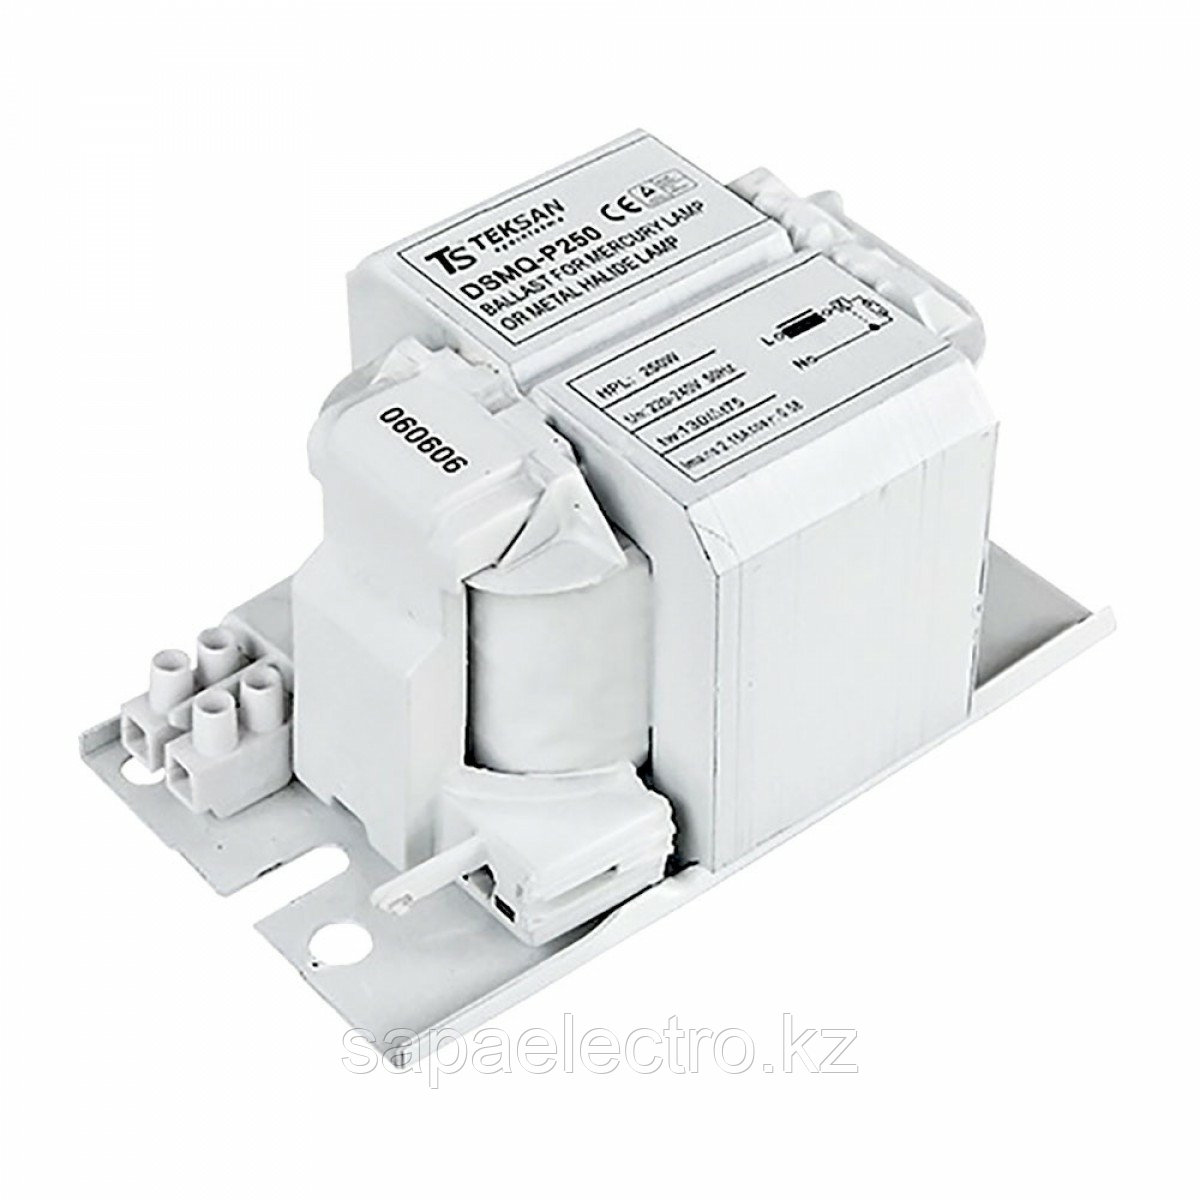 Дроссель SODIUM BALLAST 400W (PHILIPS MODEL)TS)6шт